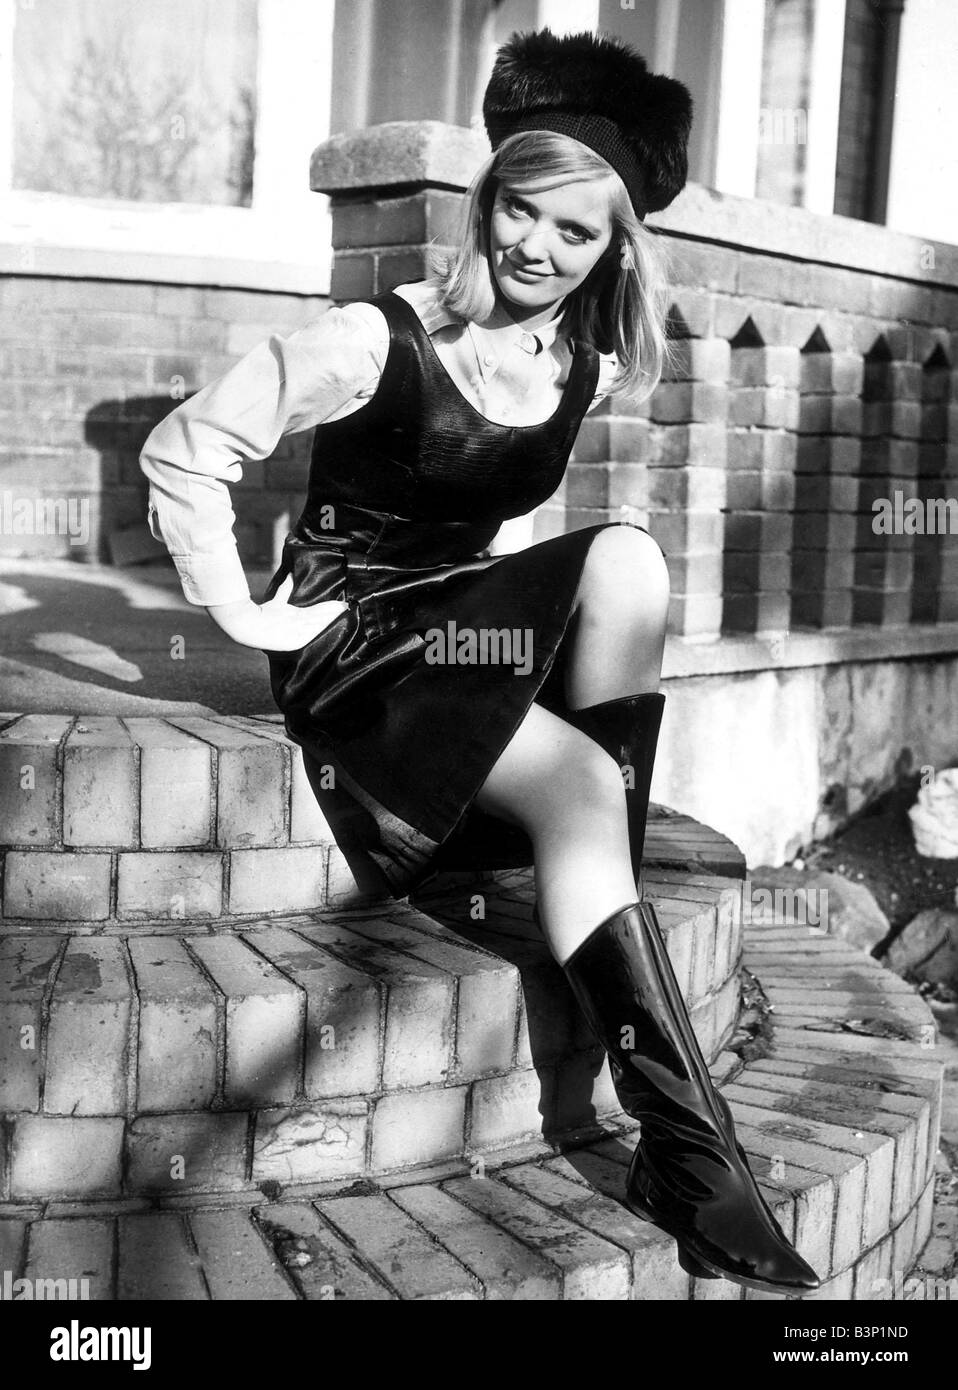 Clothing Fashion Leather Dress Boots January 1964 Fashion 1960 S Stock Photo 19538665 Alamy